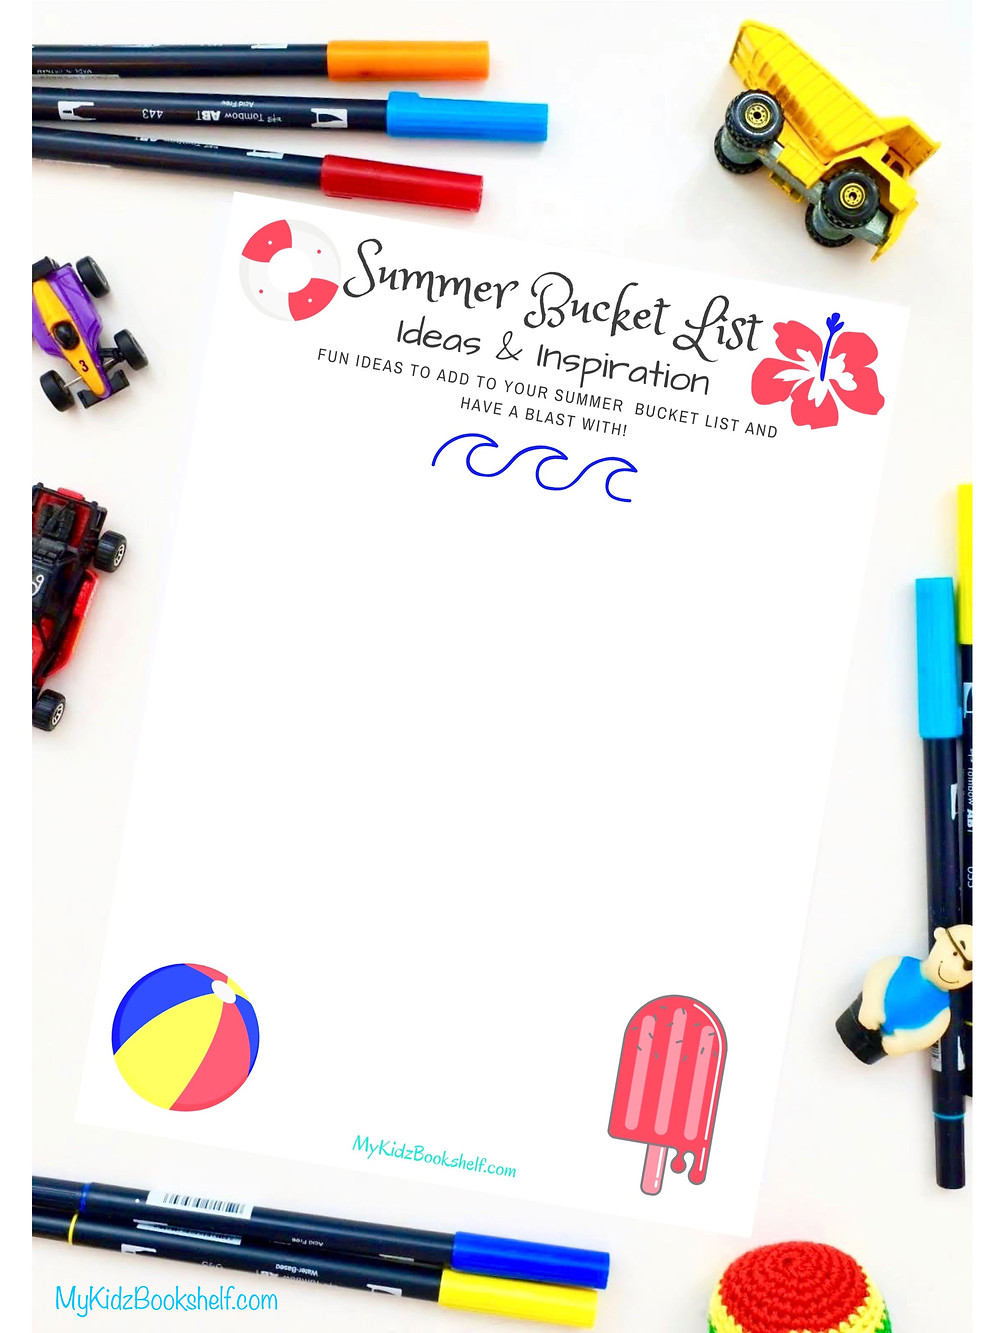 Summer Bucket List Ideas & Inspiration Free Printable beach blue